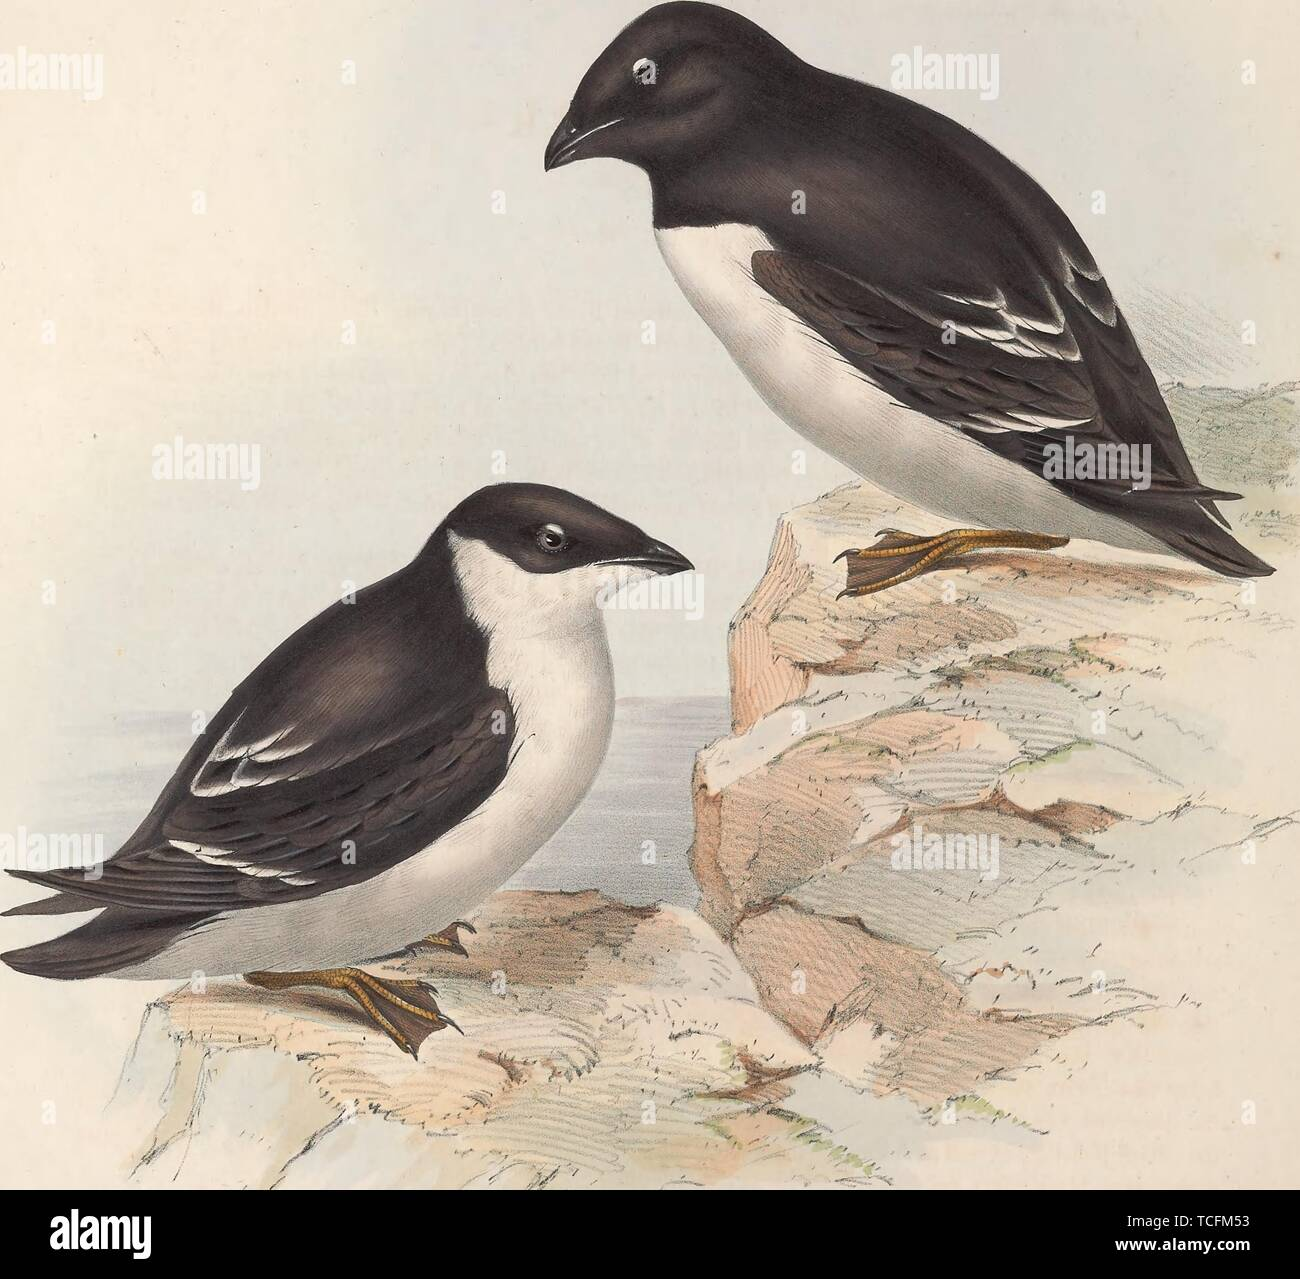 Engraved drawing of the Little Auks (Alle alle), found on islands in the high Arctic, 1837. Courtesy Internet Archive. () - Stock Image